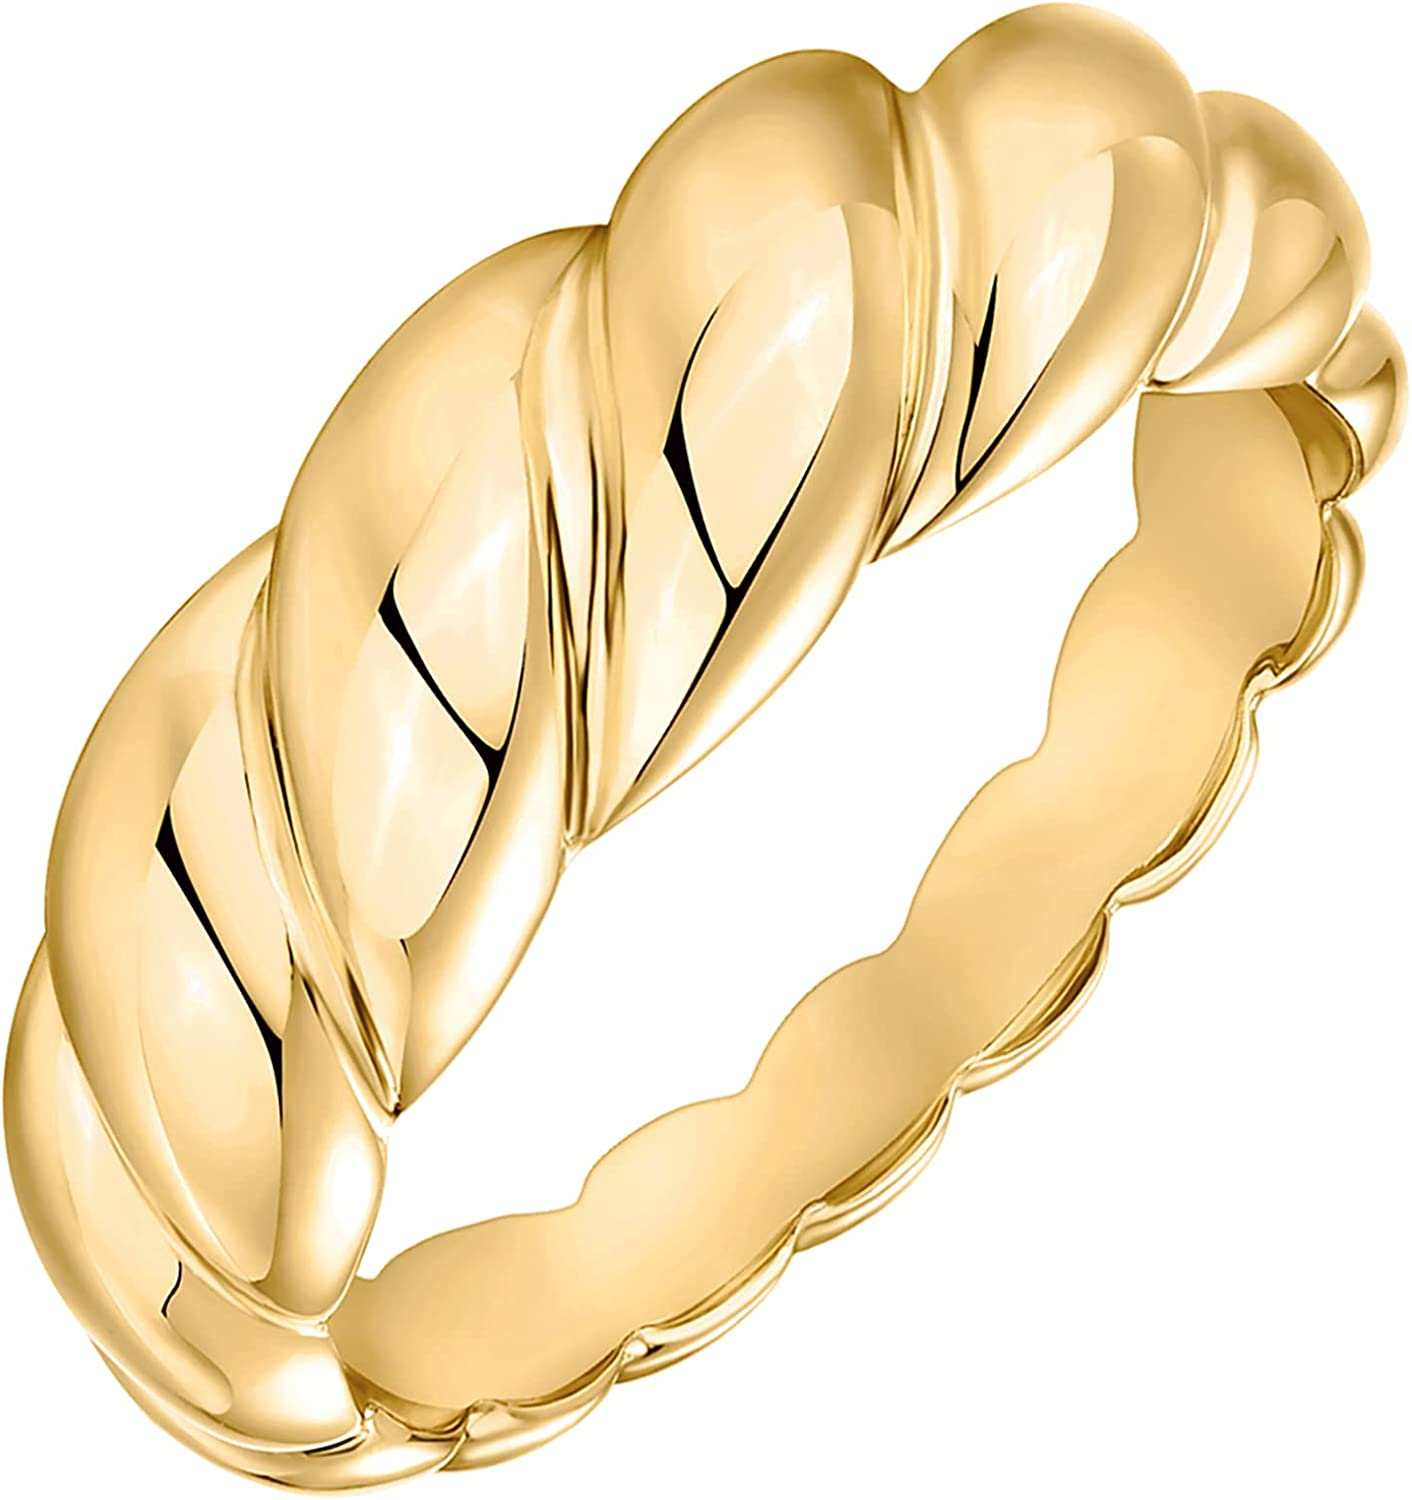 PAVOI 14K Gold Plated Croissant Dome Ring Twisted Braided Gold Plated Ring | Chunky Signet Ring